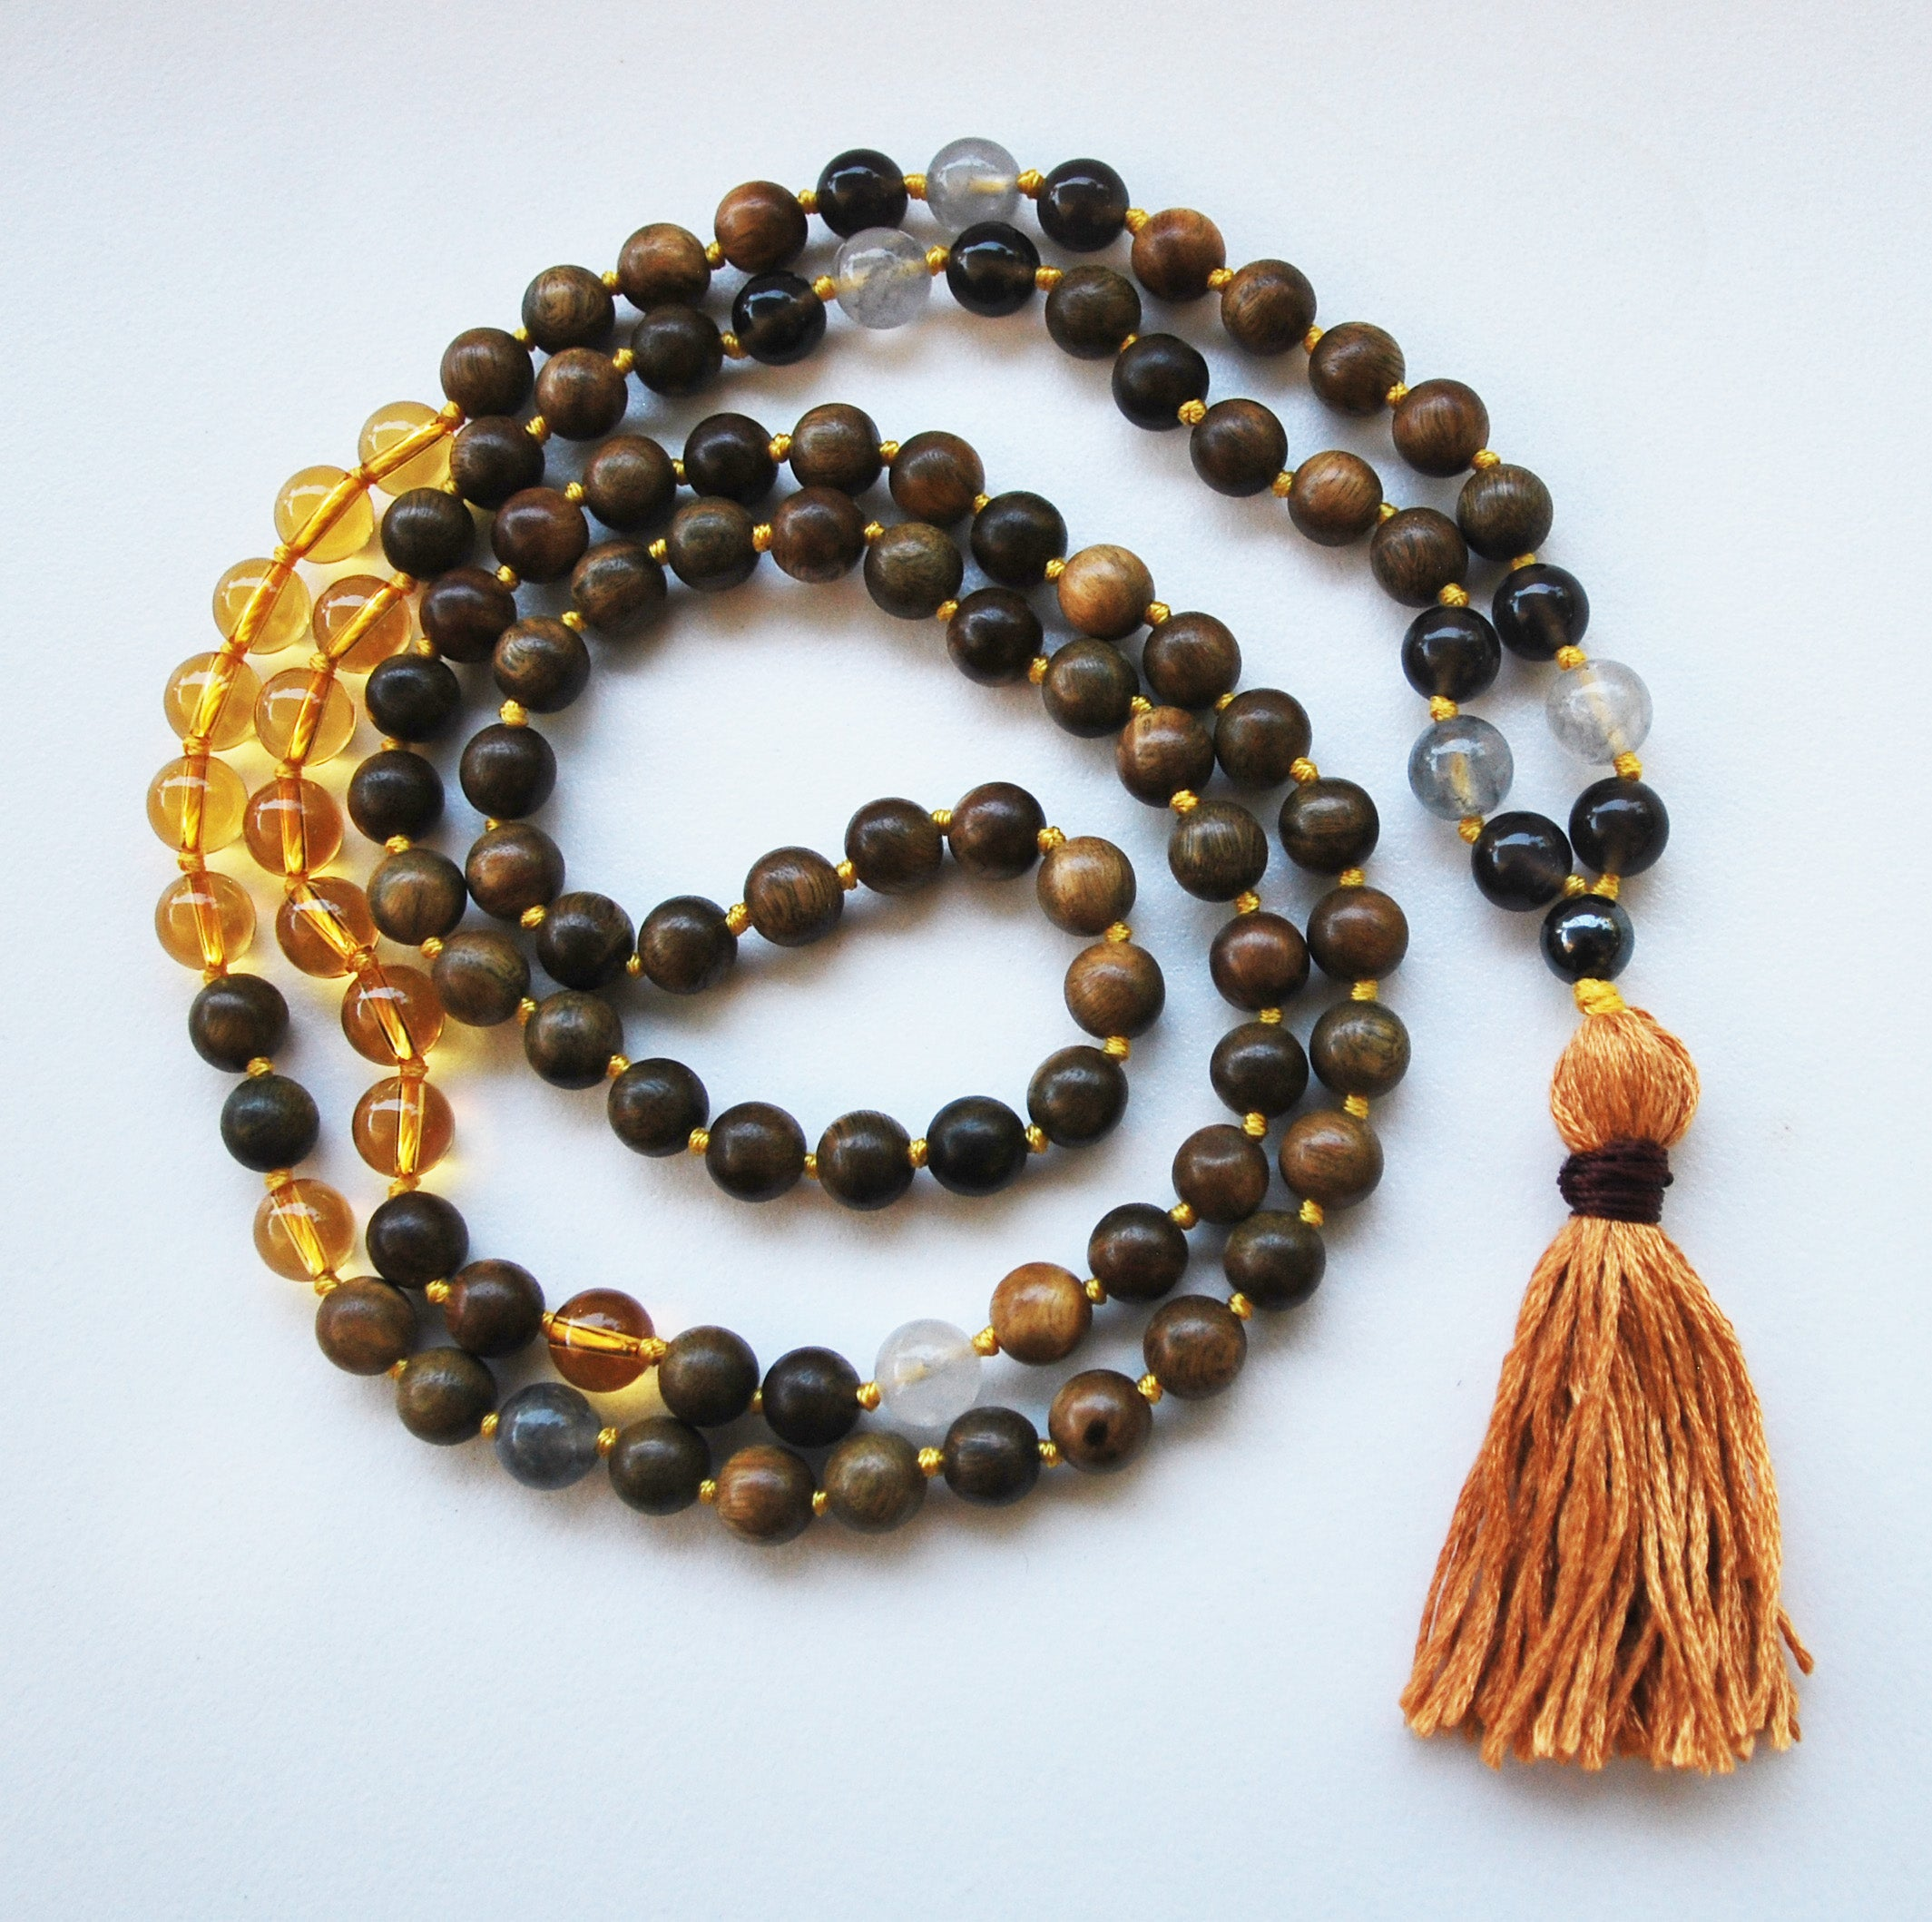 8mm Green Sandalwood & Citrine 108 Knotted Mala Necklace with Cotton Tassel